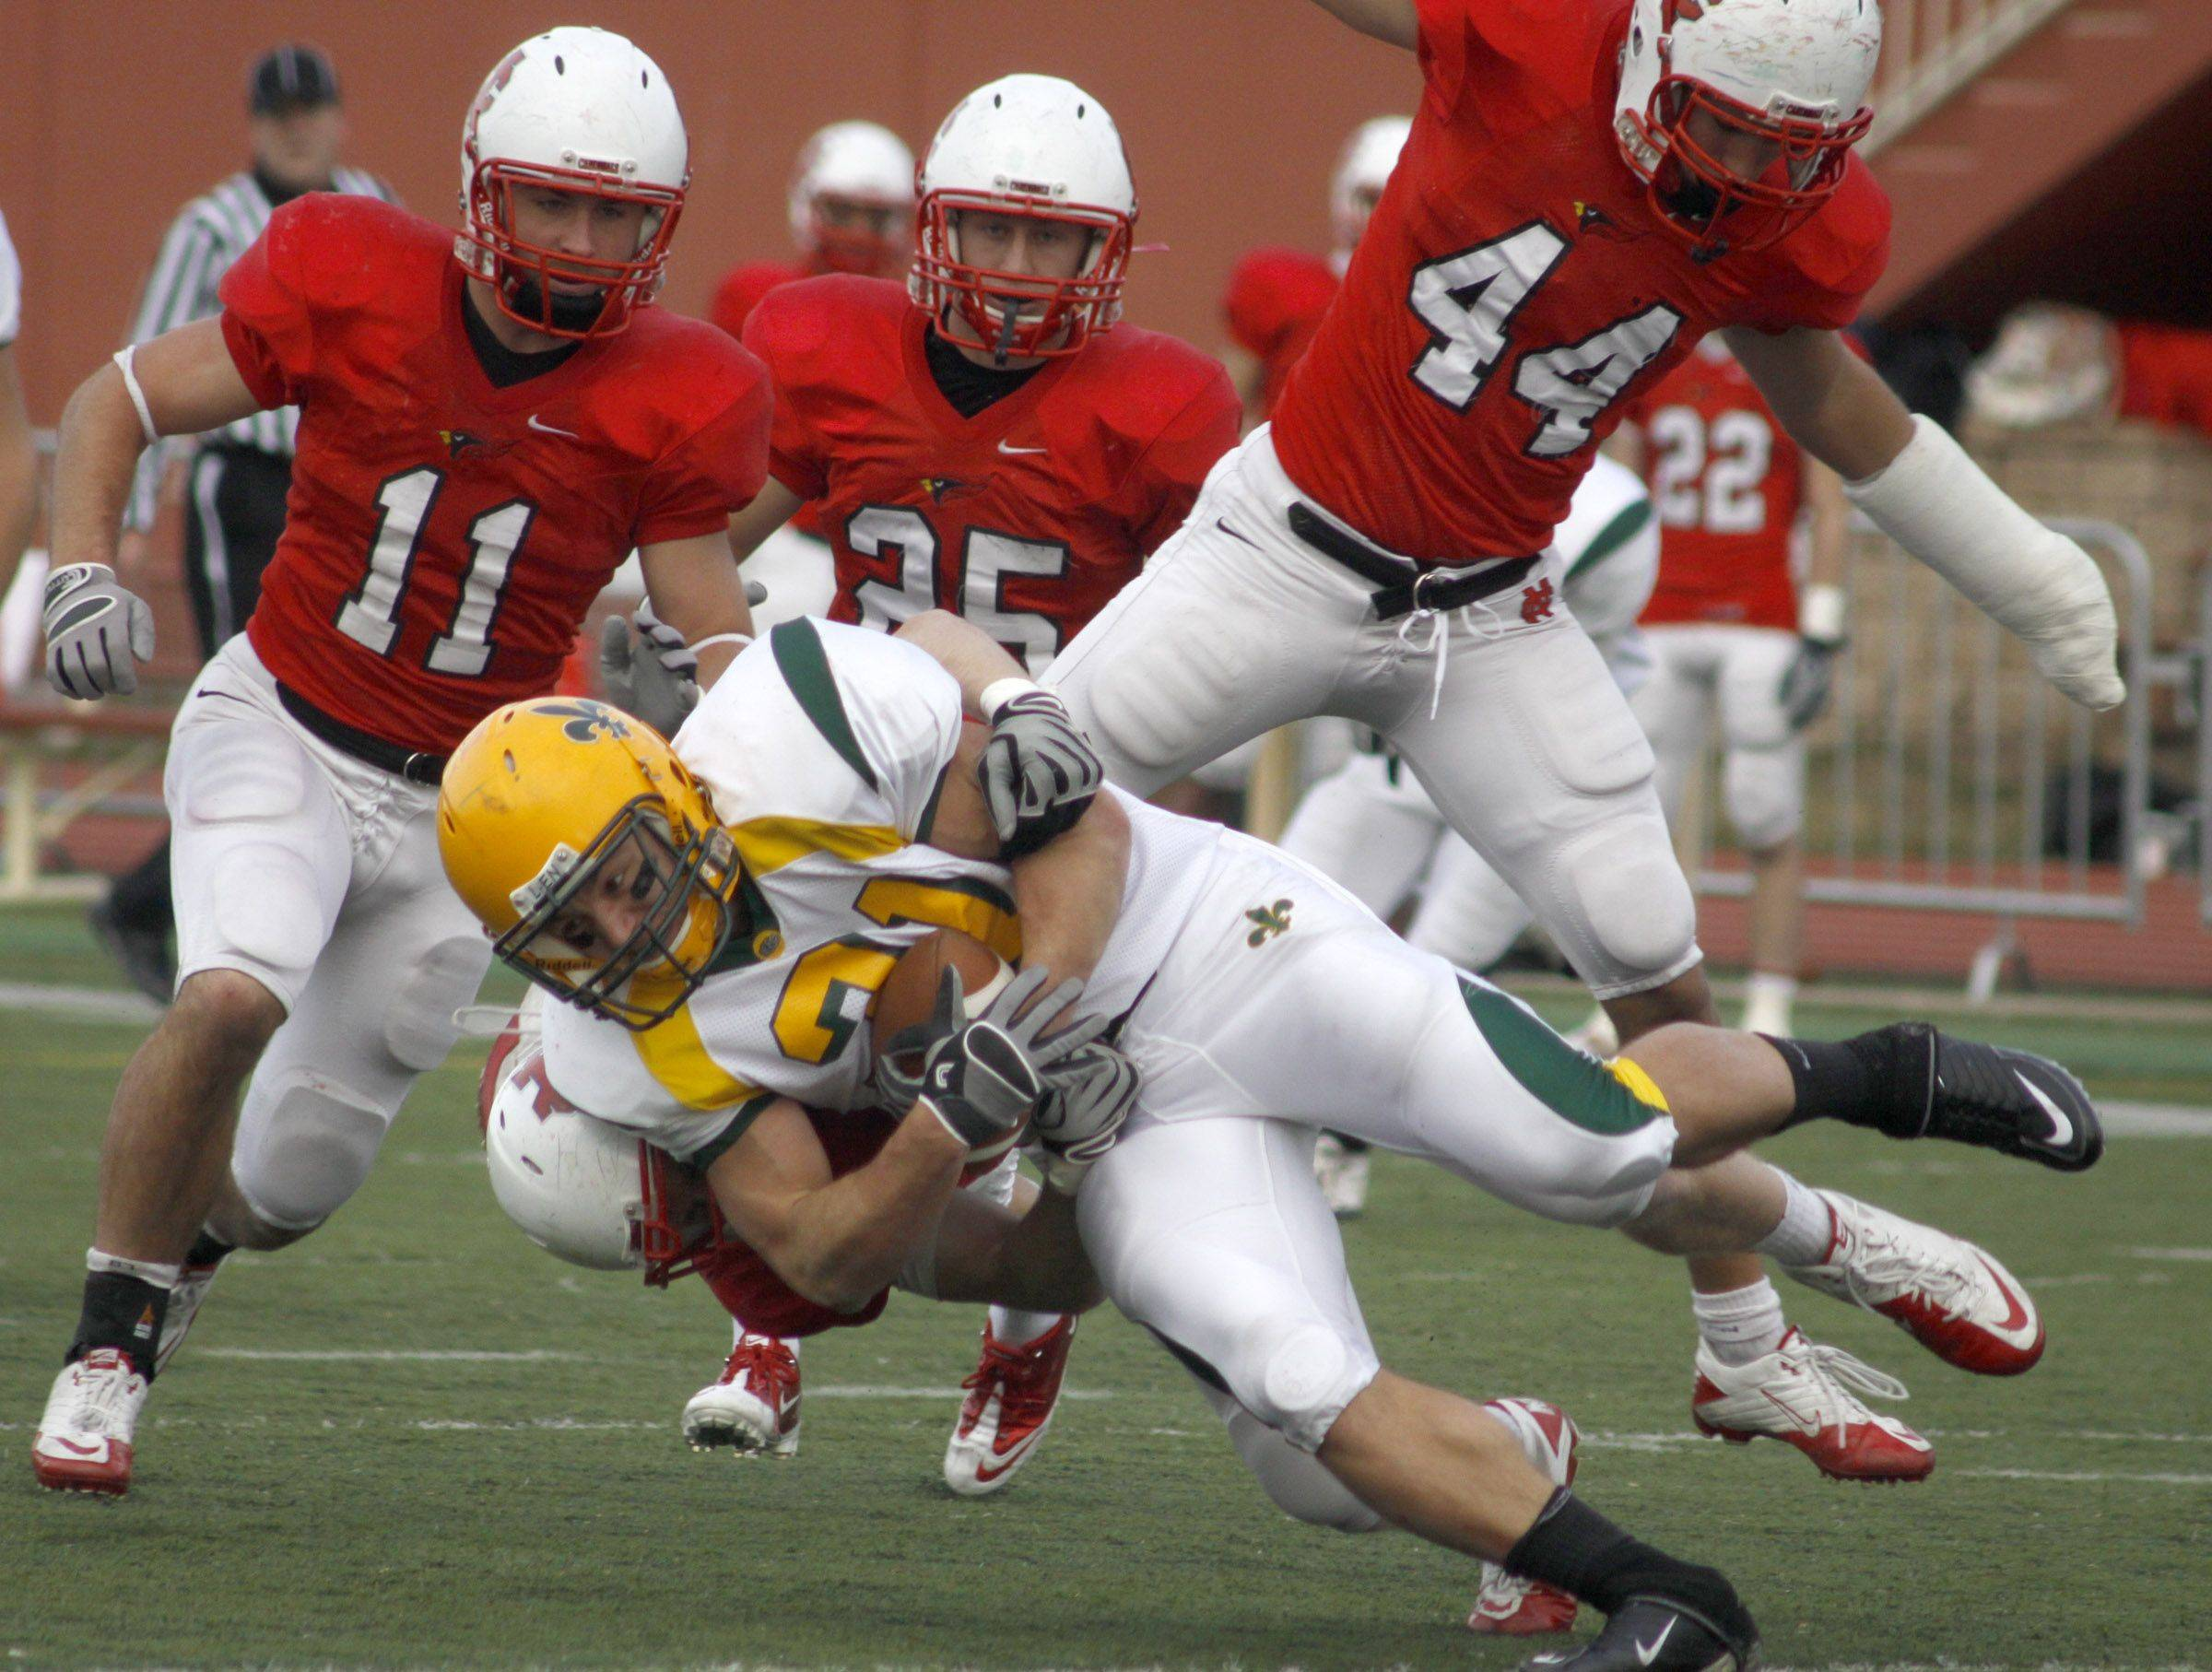 North Central College players Joe Schneiderbauer, 11, Shane Dierking, 25, and Kane Thompson, 44, bring down a St. Norbert player at Saturday's playoff football game. North Central College went on to win 57 to 7.